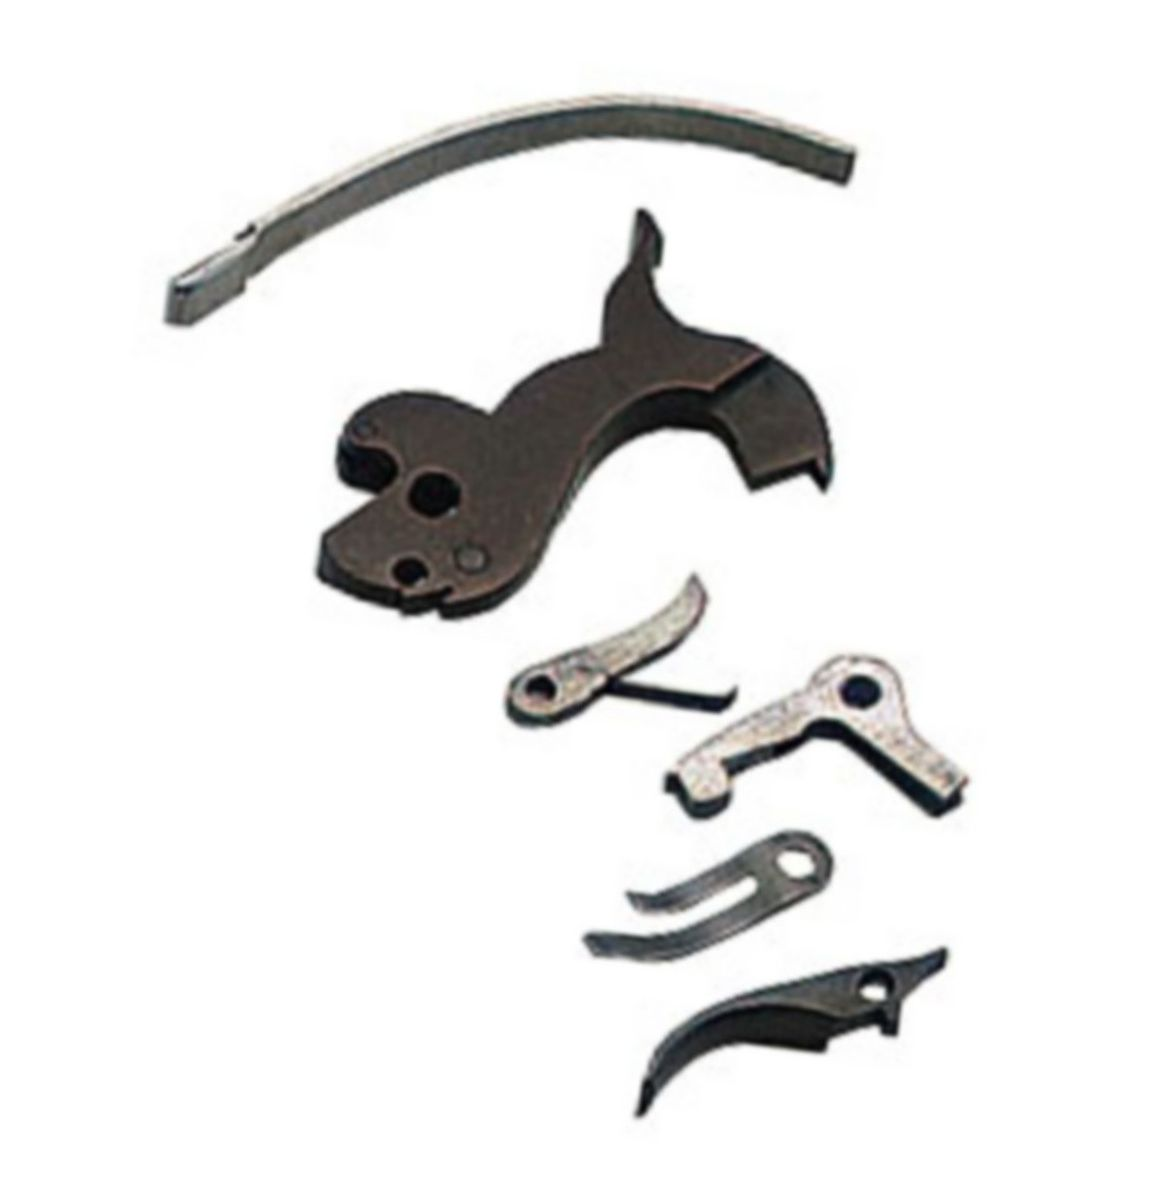 Pietta Replacement Black Powder Revolver Parts Kit